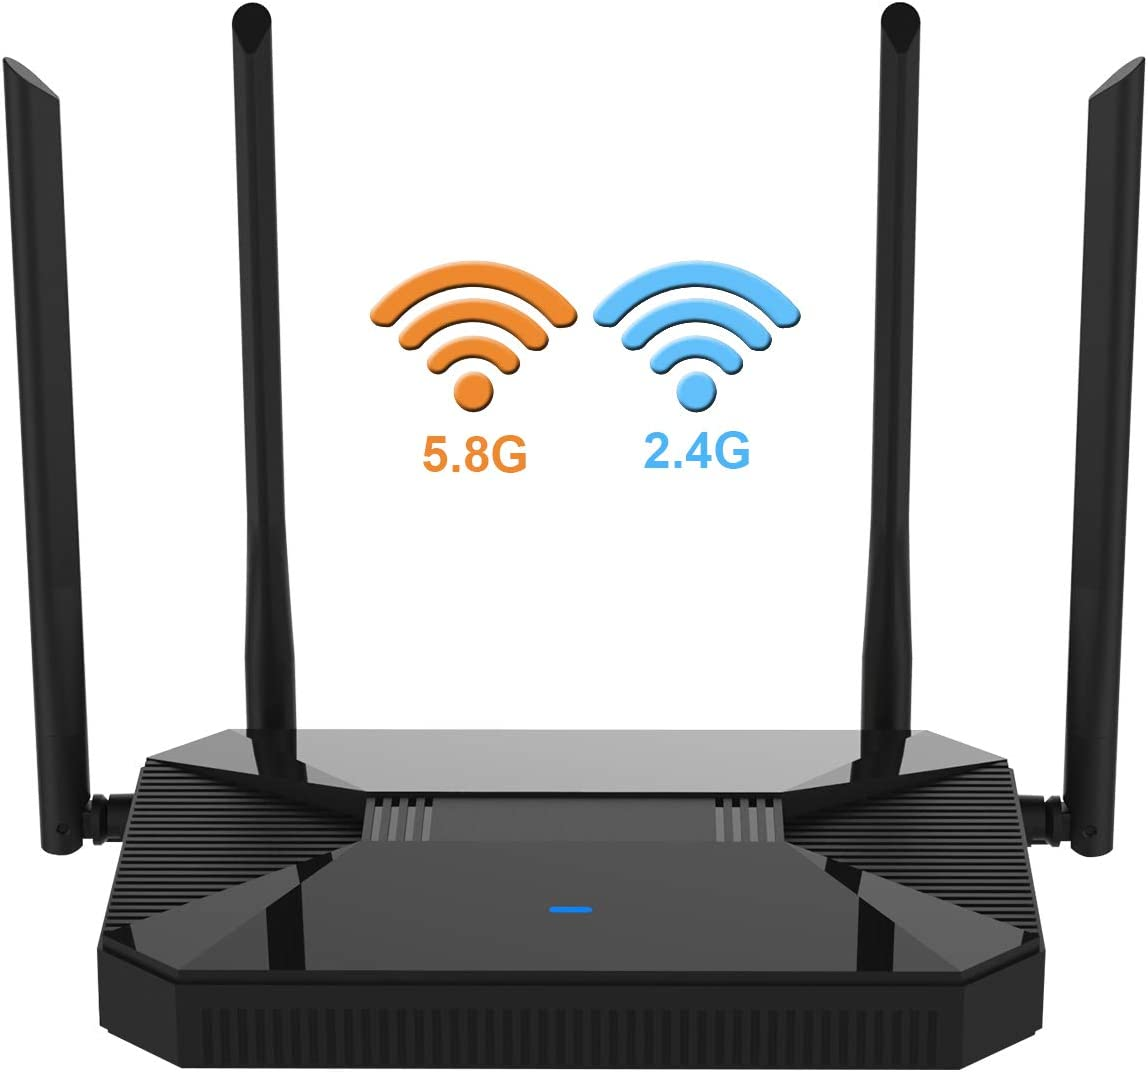 Newest 2020 Wireless WiFi Router High Speed Gaming Router Up to AC1200Mbps with Dual Band 2.4GHz and 5GHz Ideal for Home Office HD Video Streaming Works Great with Any Devices